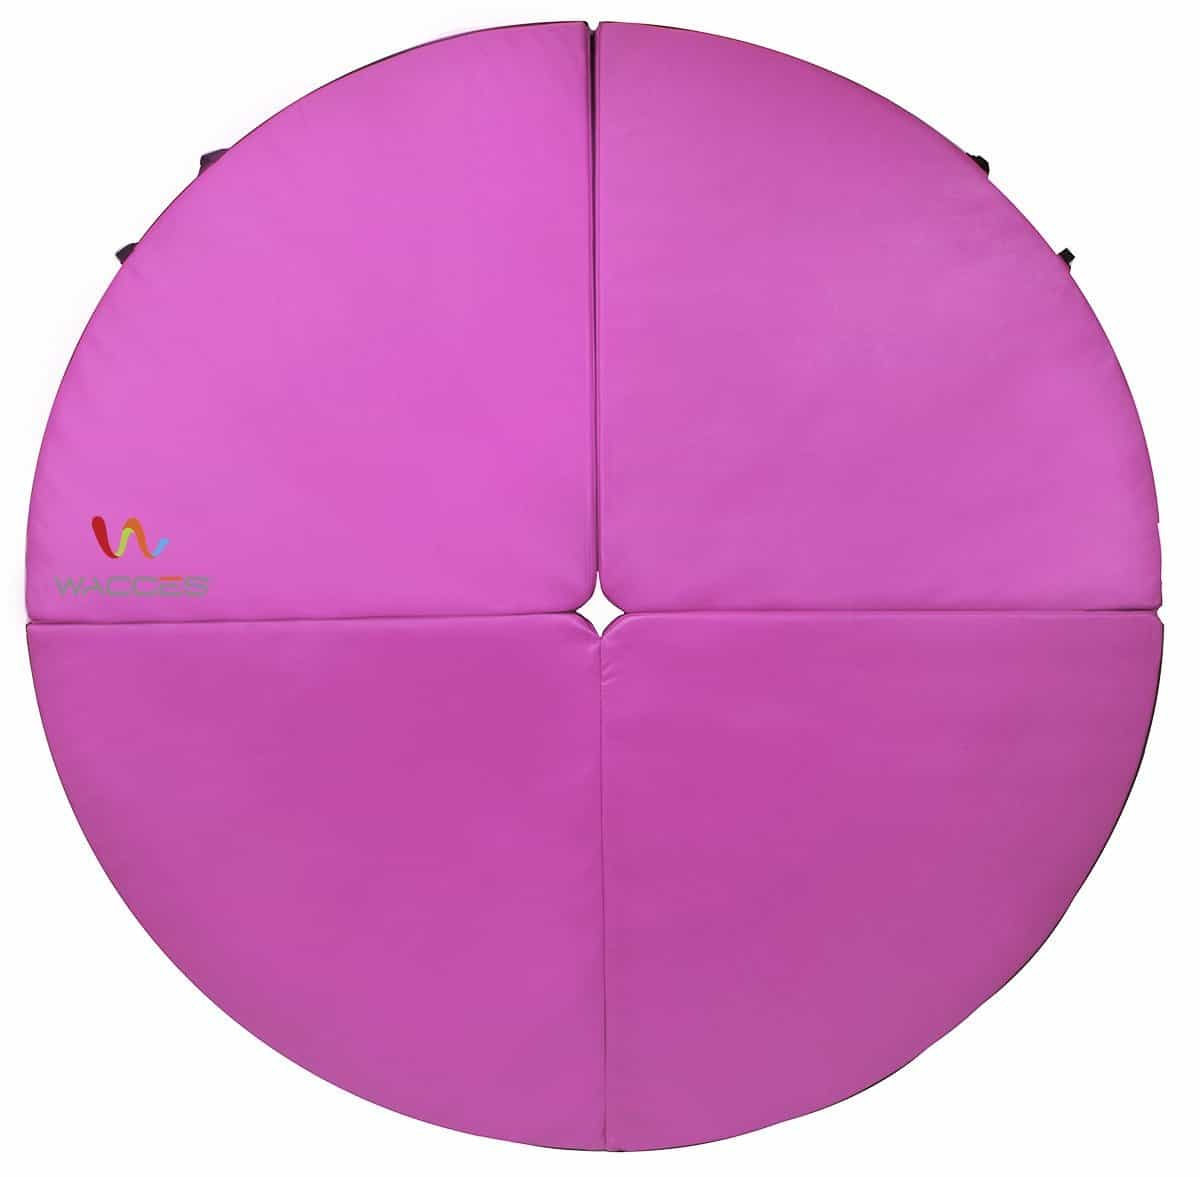 pink waccas pole mat review